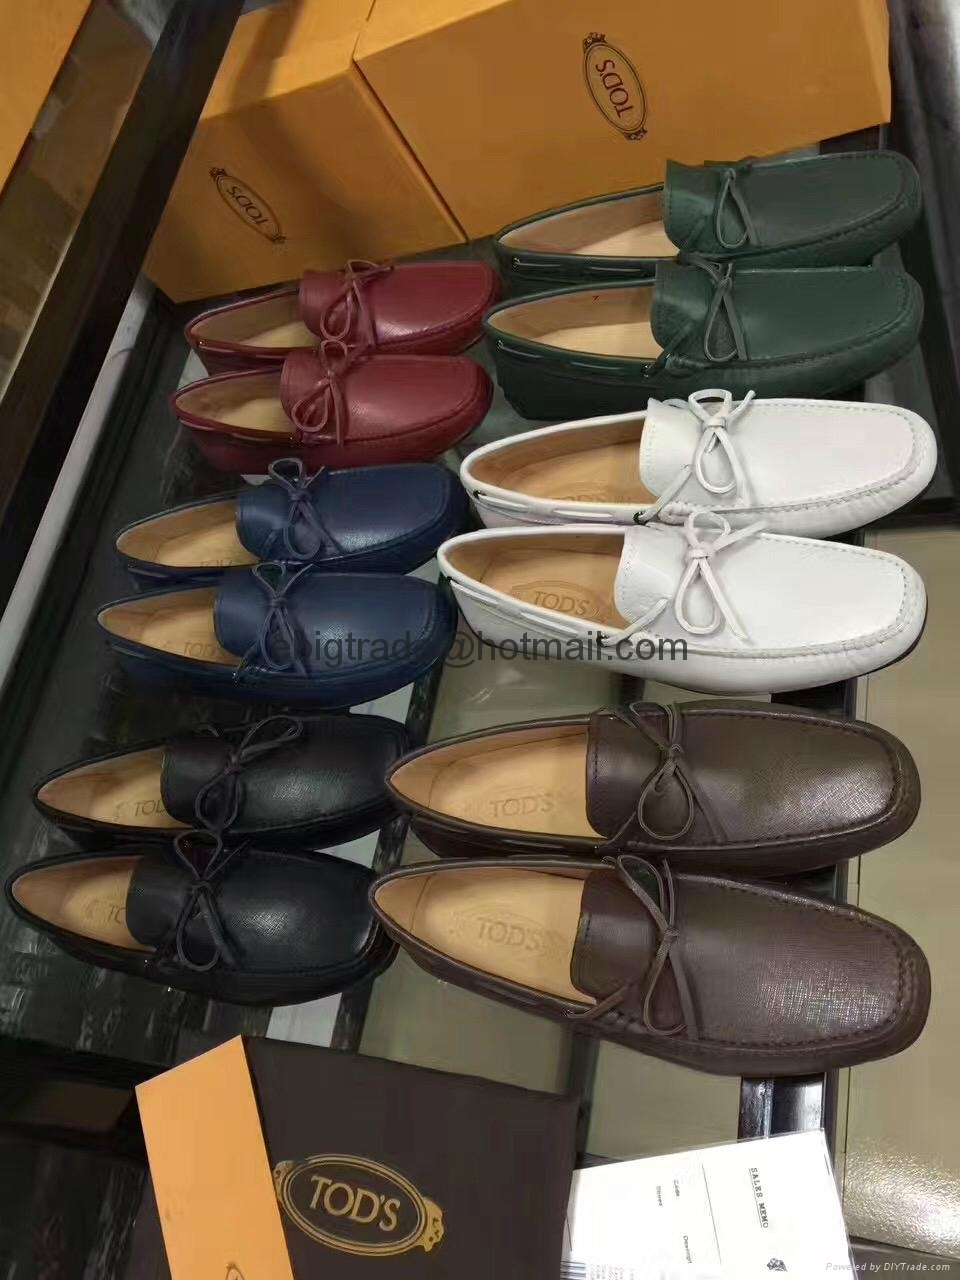 cheap TOD'S shoes